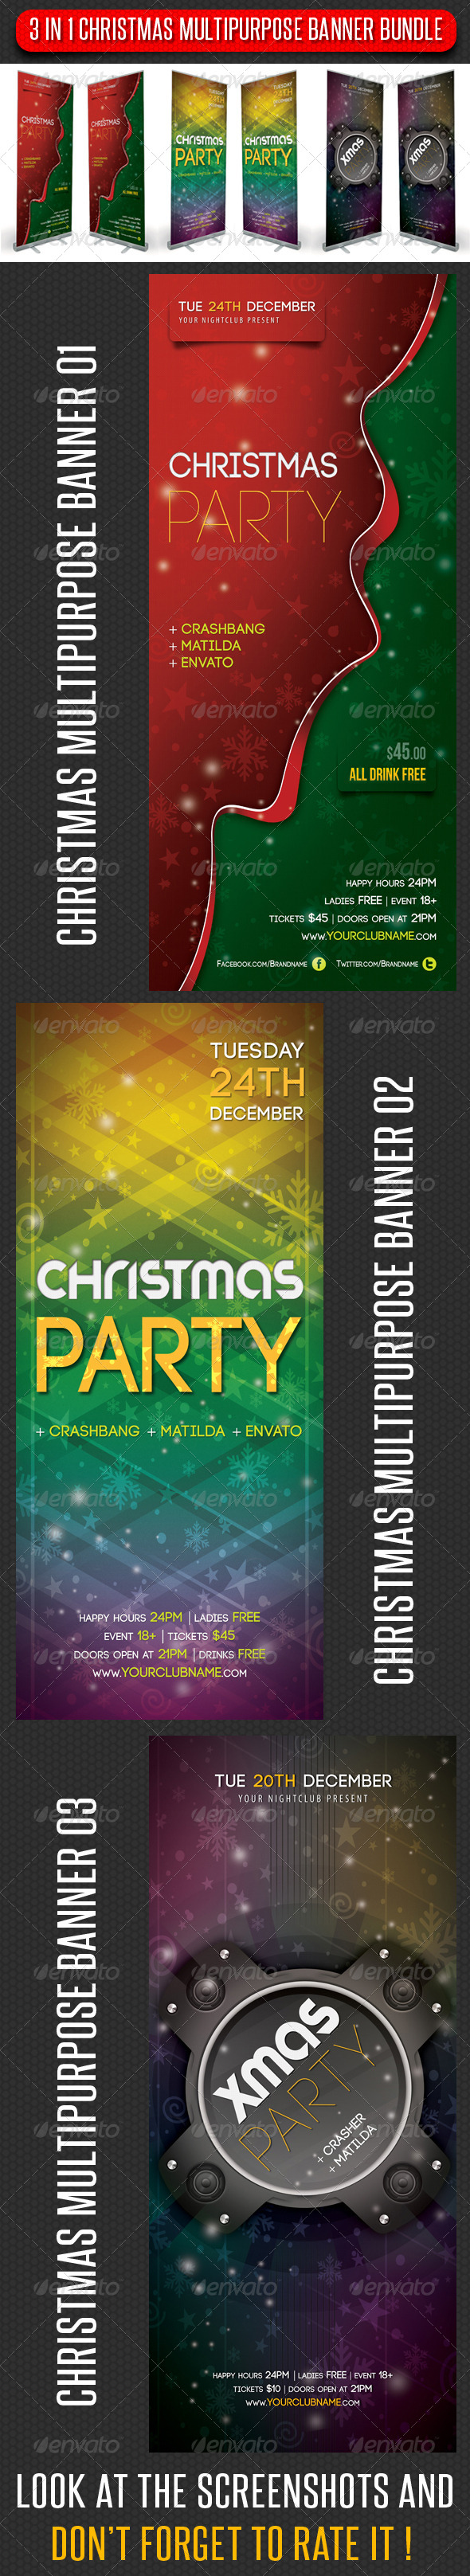 GraphicRiver 3 in 1 Merry Christmas Multipurpose Banner Bundle 6337375